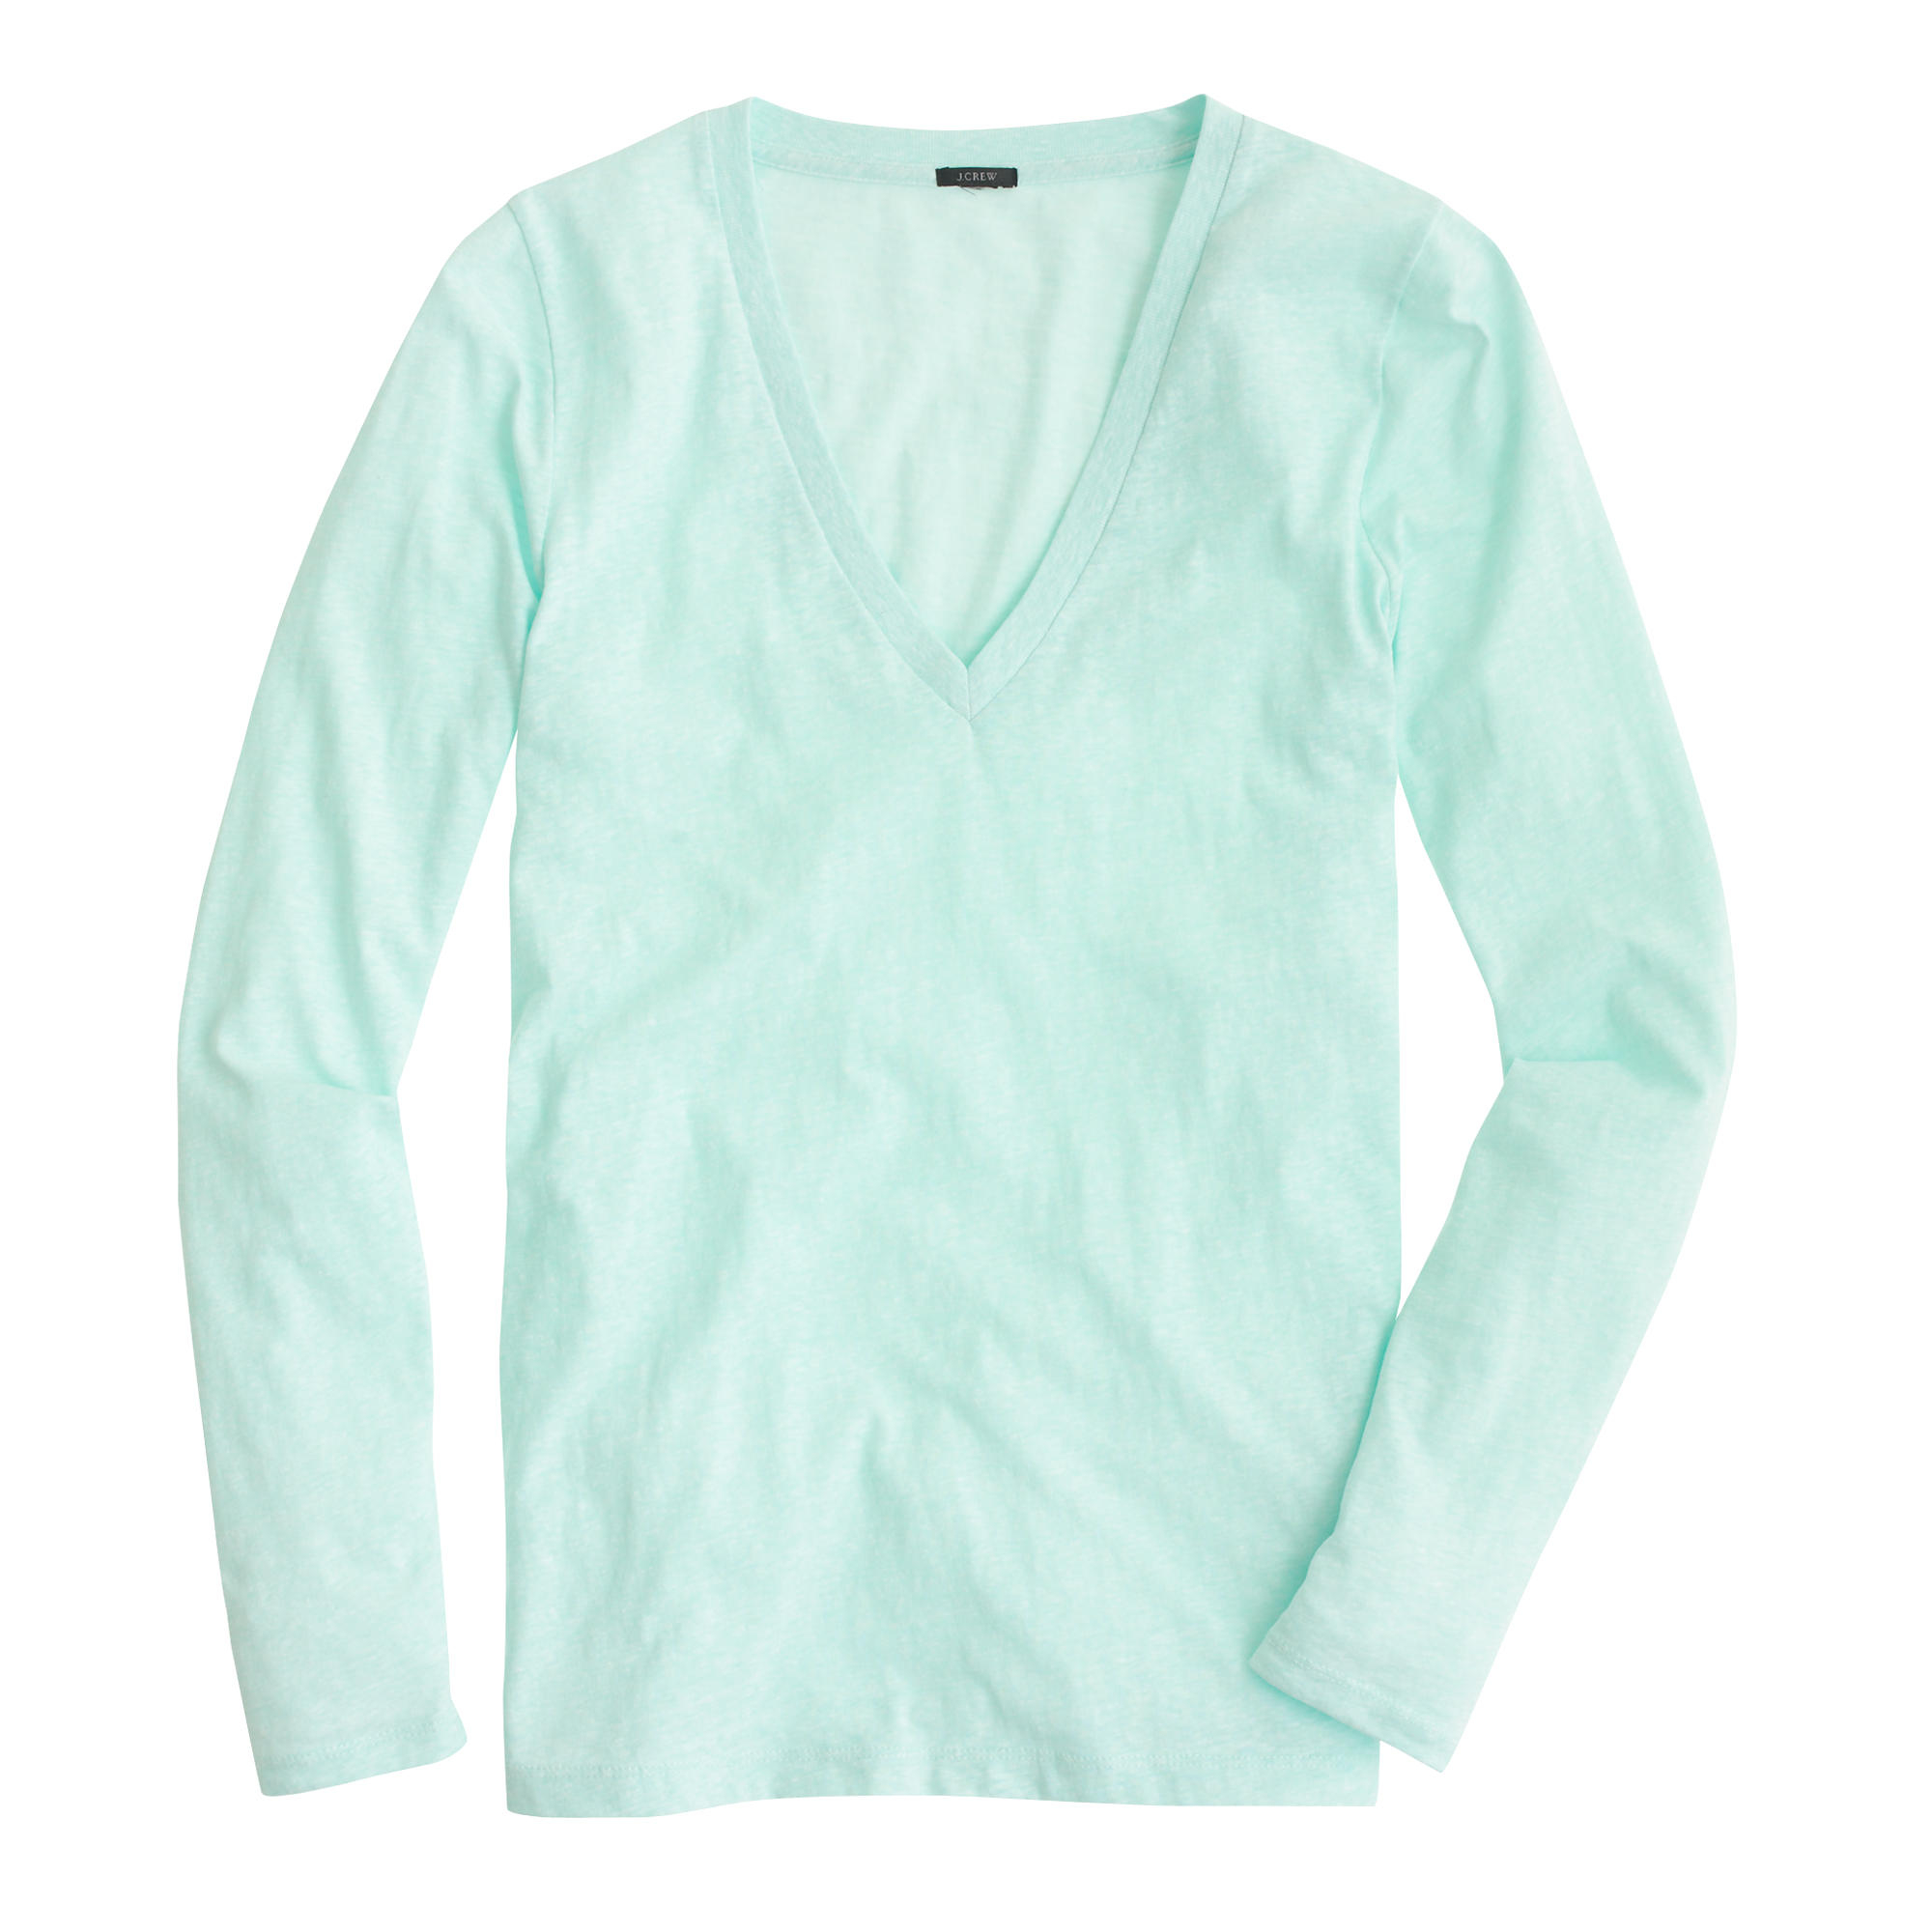 Speckled cotton long sleeve v neck t shirt in blue for Cotton long sleeve v neck t shirts